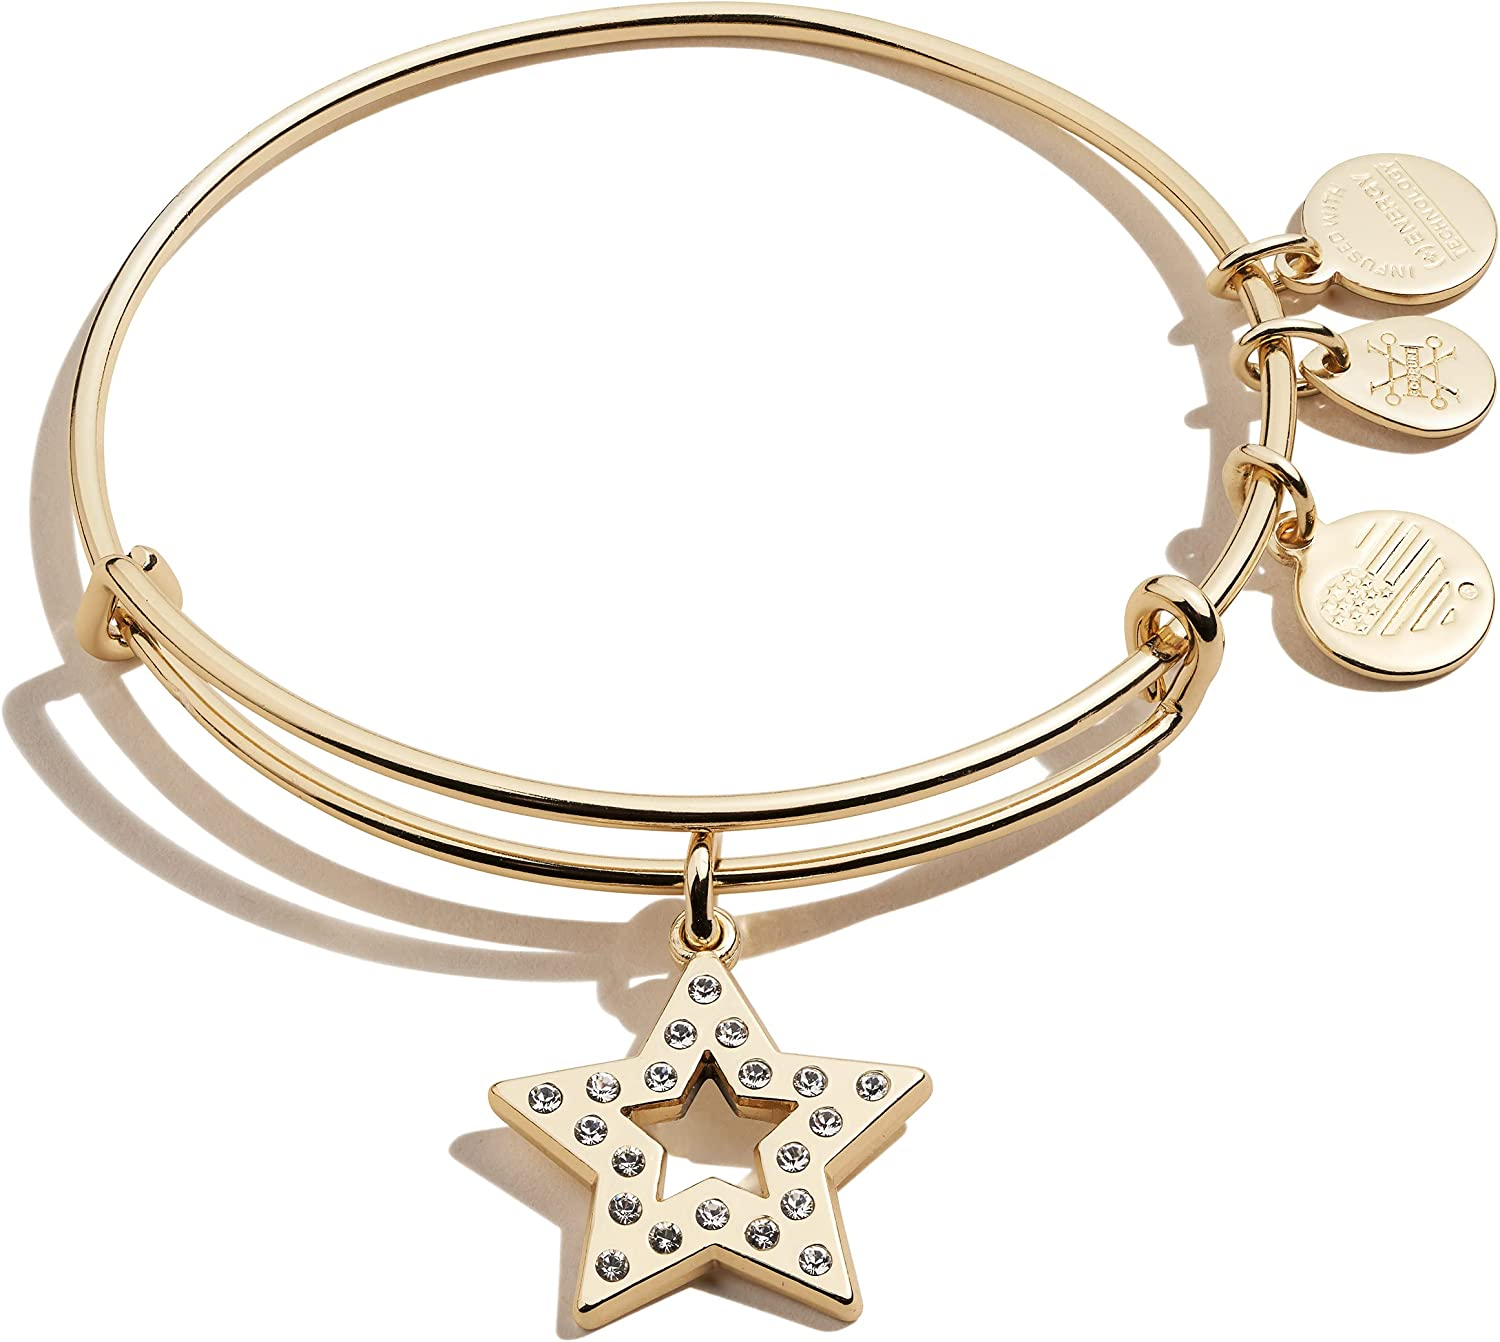 Alex and Ani Path of Symbols Expandable Bangle for Women, Pave Star Charm, Shiny Gold Finish, 2 to 3.5 in